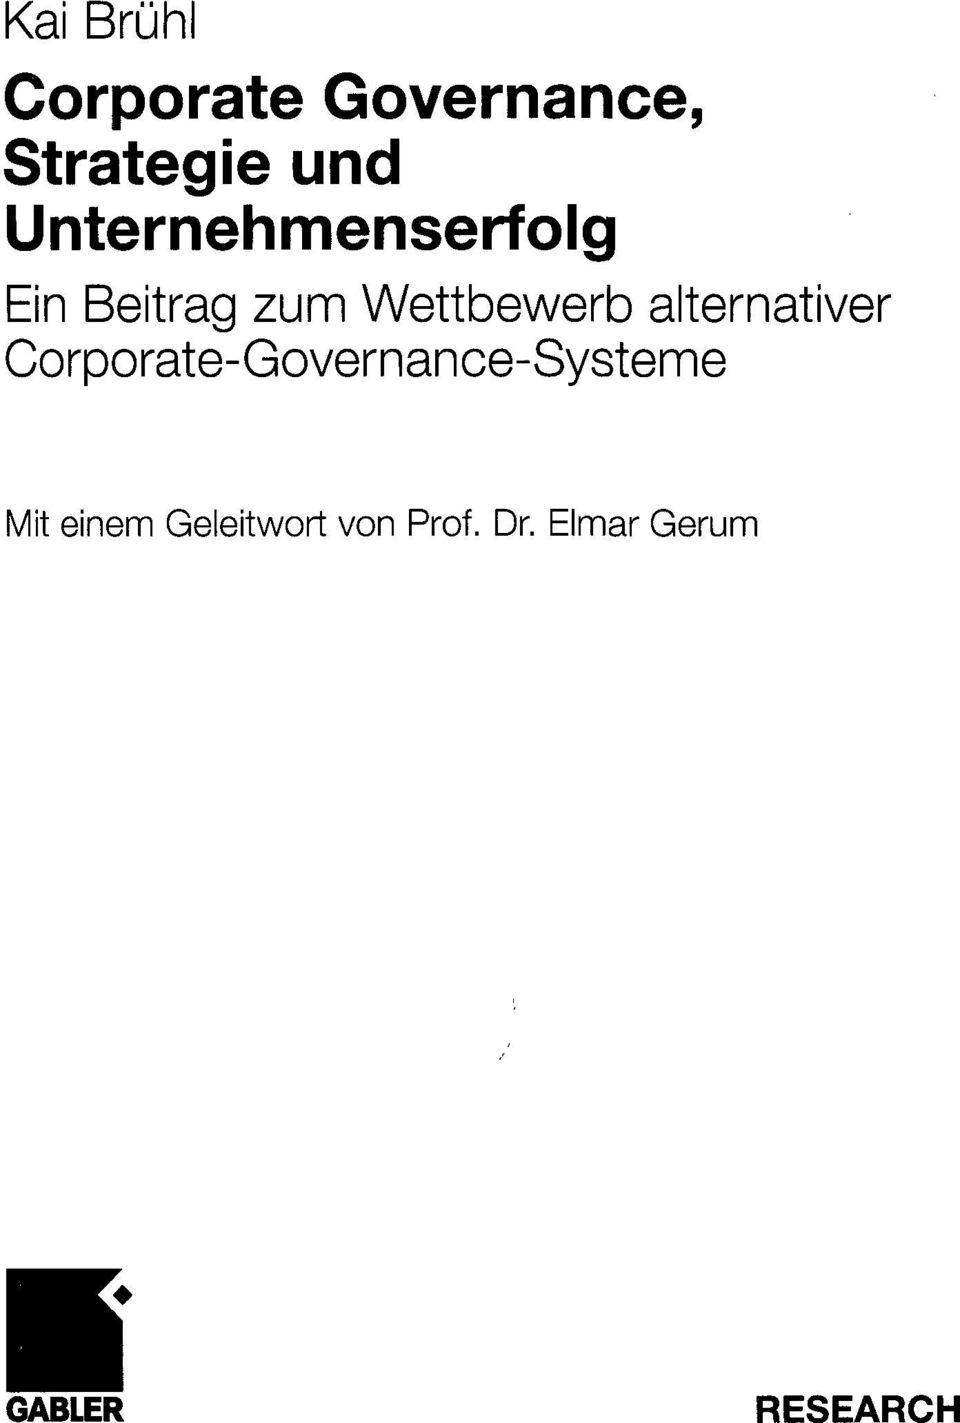 alternativer Corporate-Governance-Systeme it